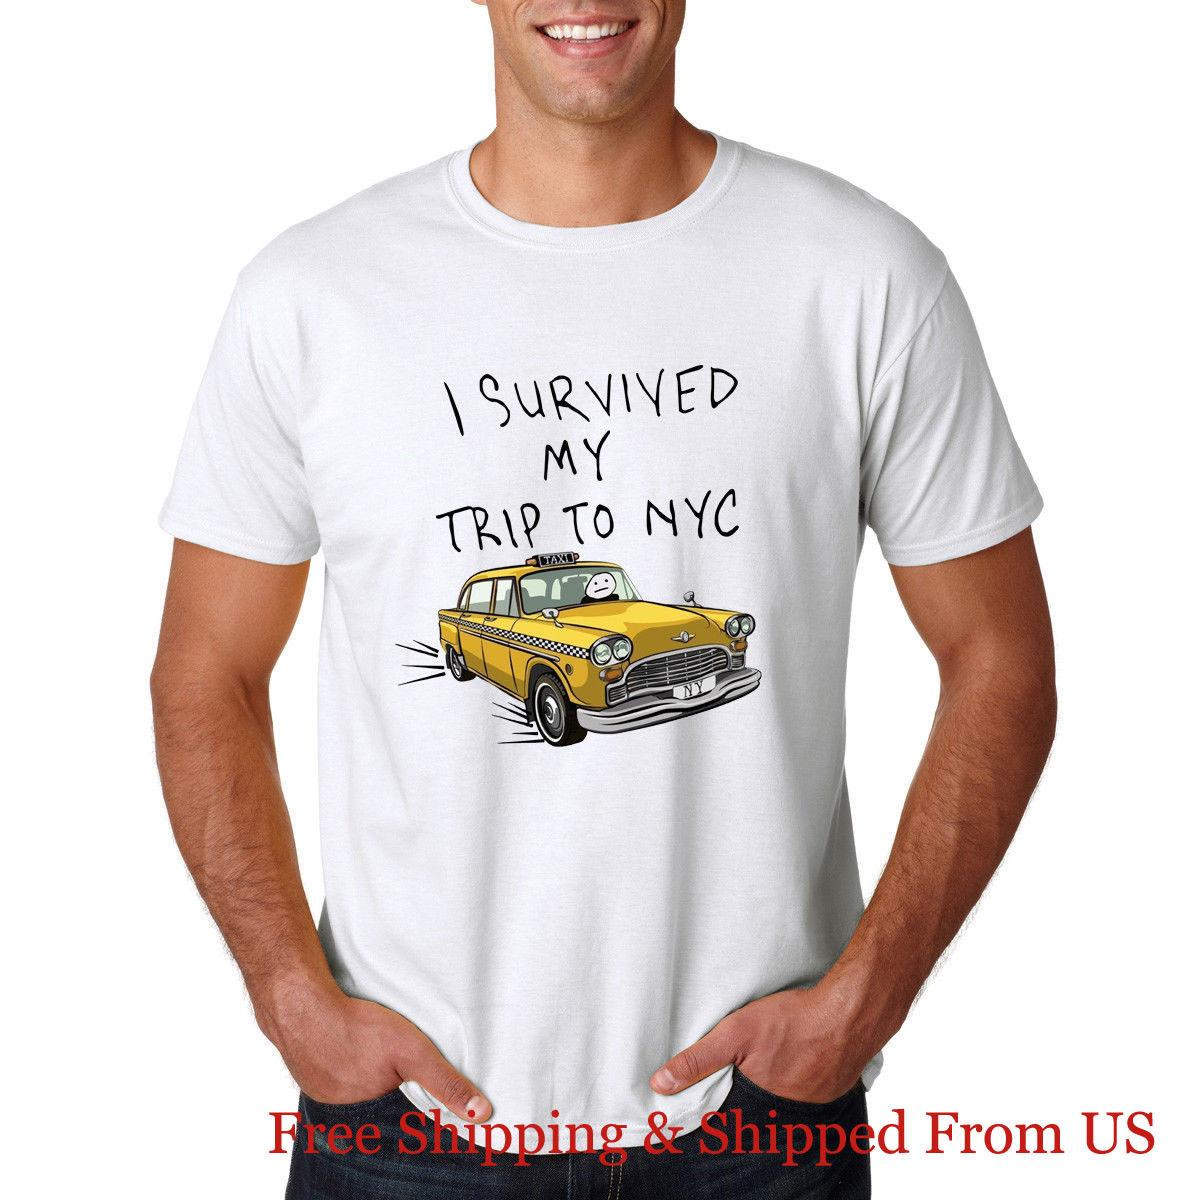 I Survived My Trip To NYC Spiderman Homecoming White T Shirt High Quality  Wholesale 2018 Funny Tee Casual Short Sleeve Of T Shirts Online Buy T Shirts  From ... 2187e8d8b11